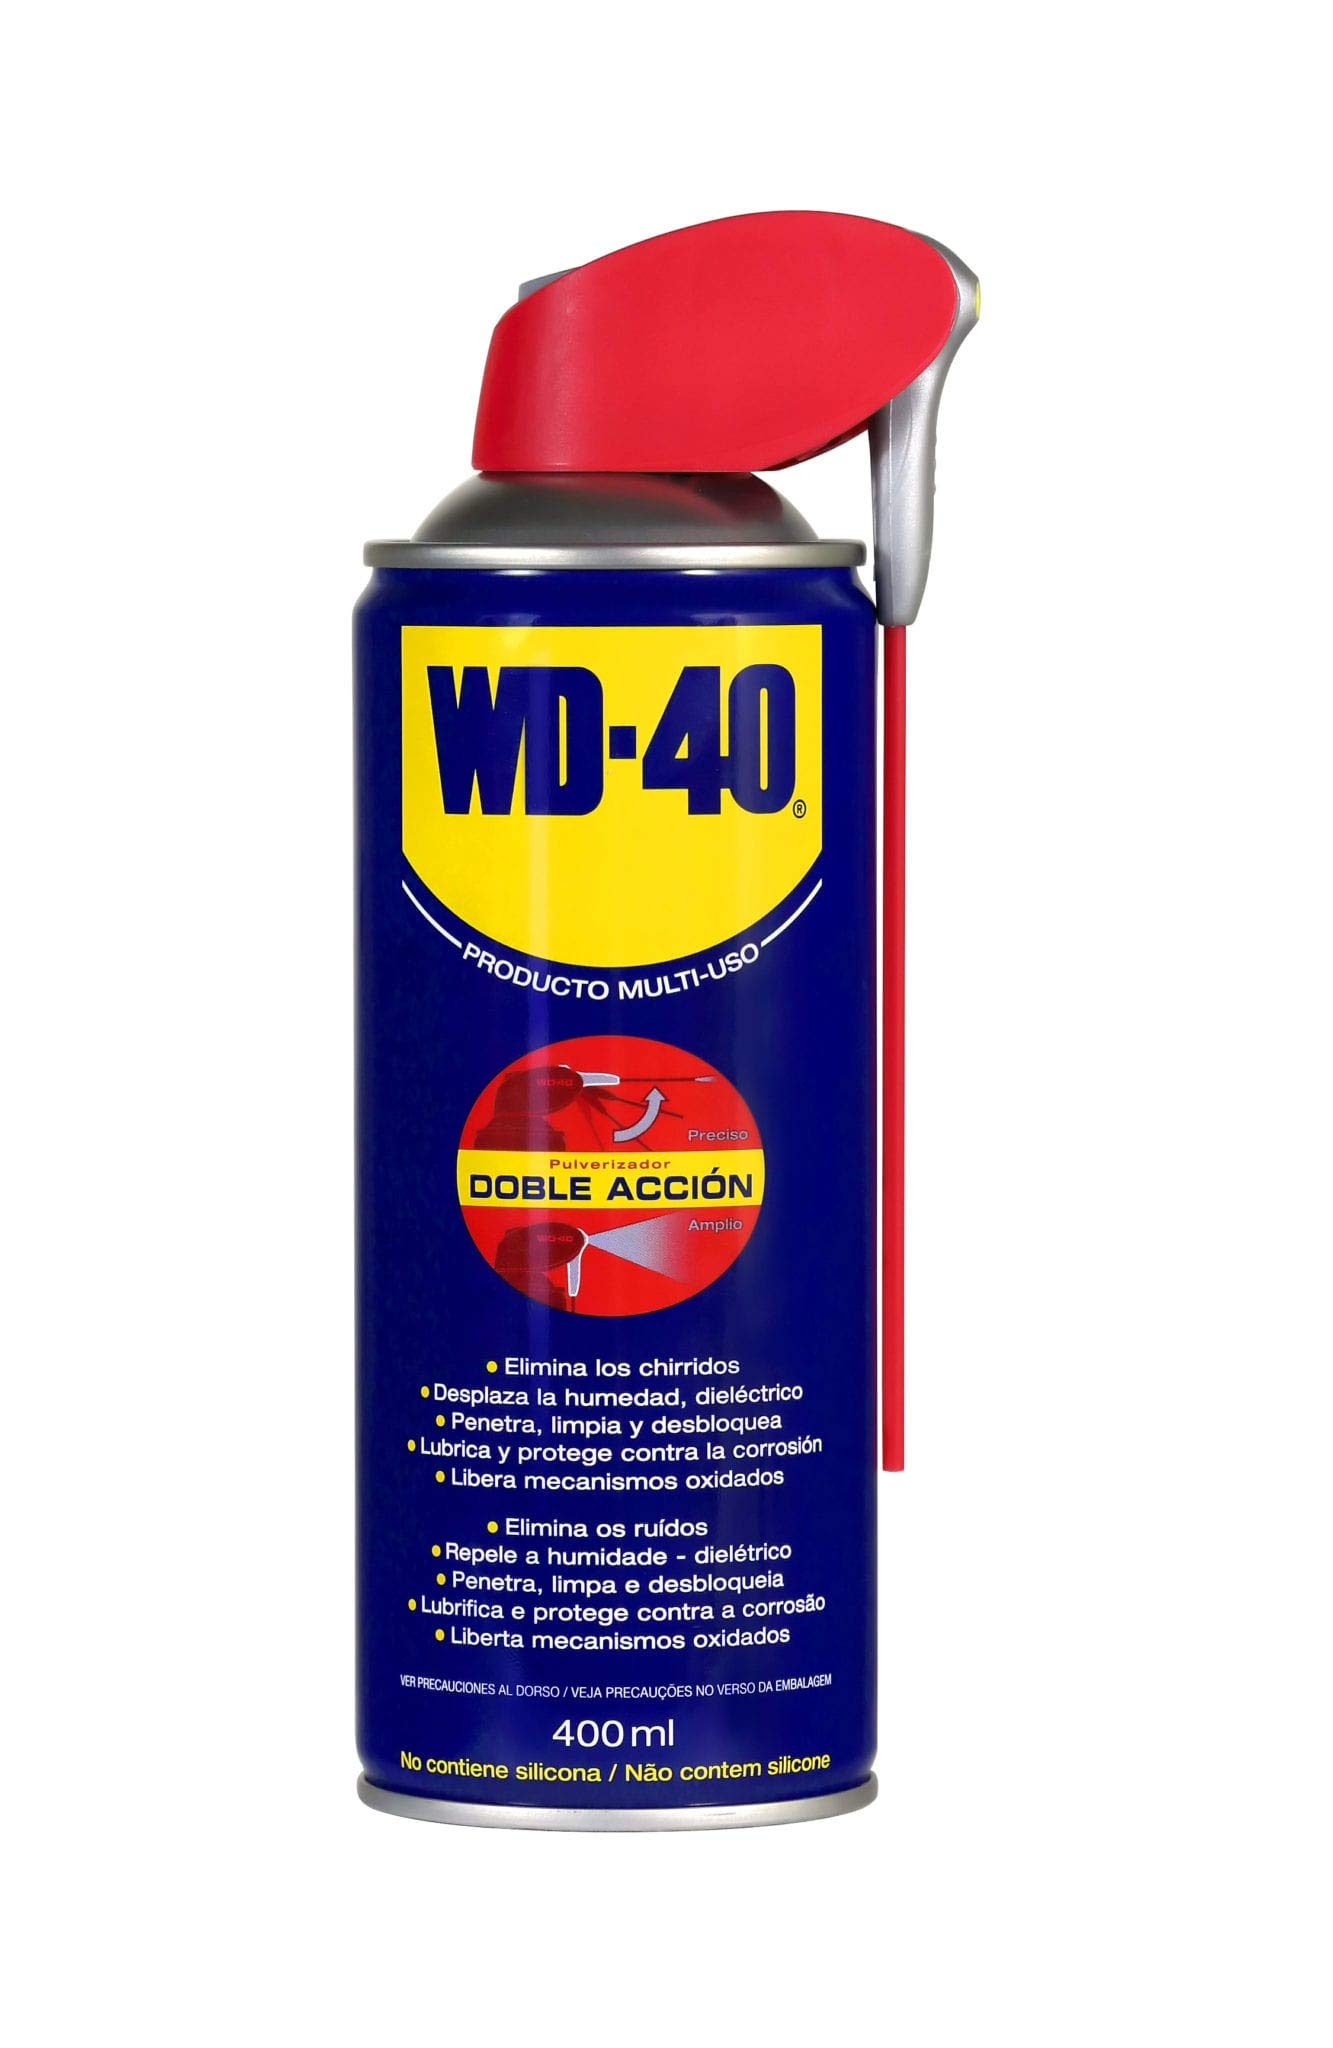 WD-40 Producto Multi-Uso Doble Acción, 400 ml product image